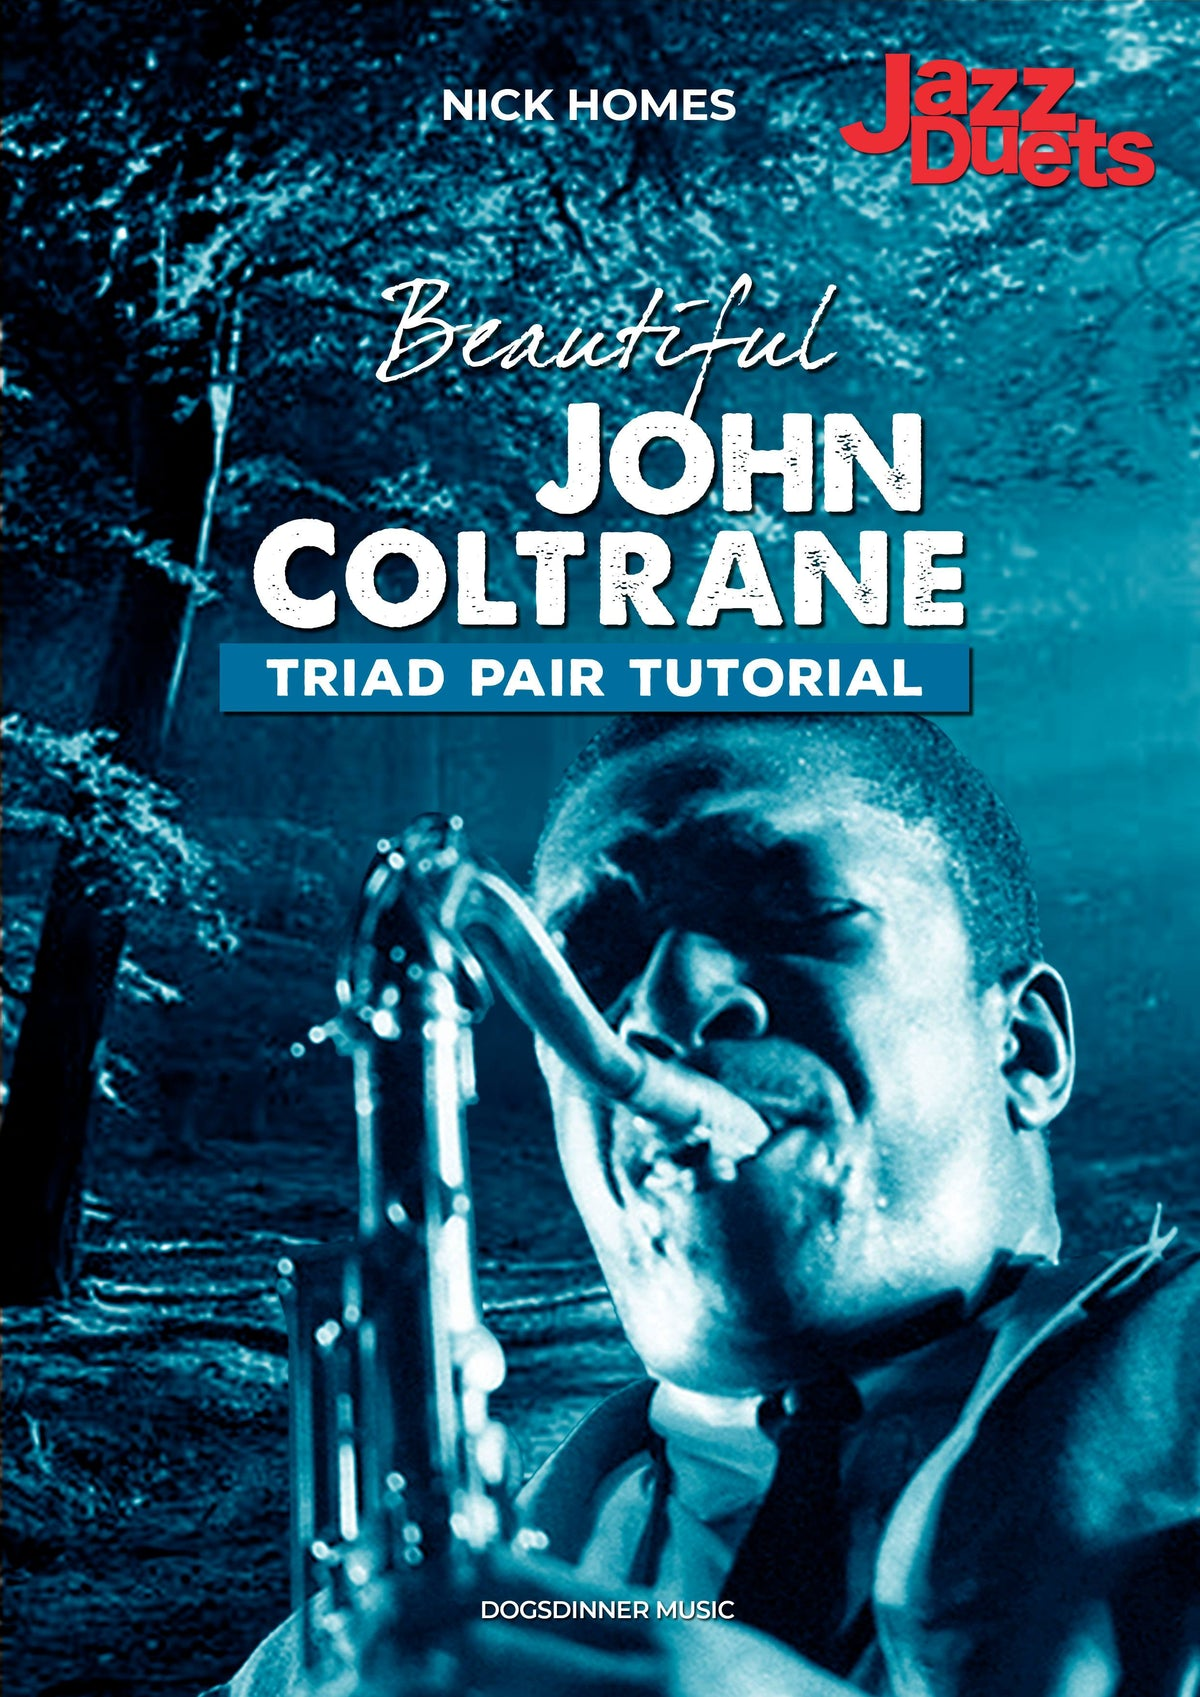 John Coltrane Triad pair tutorial